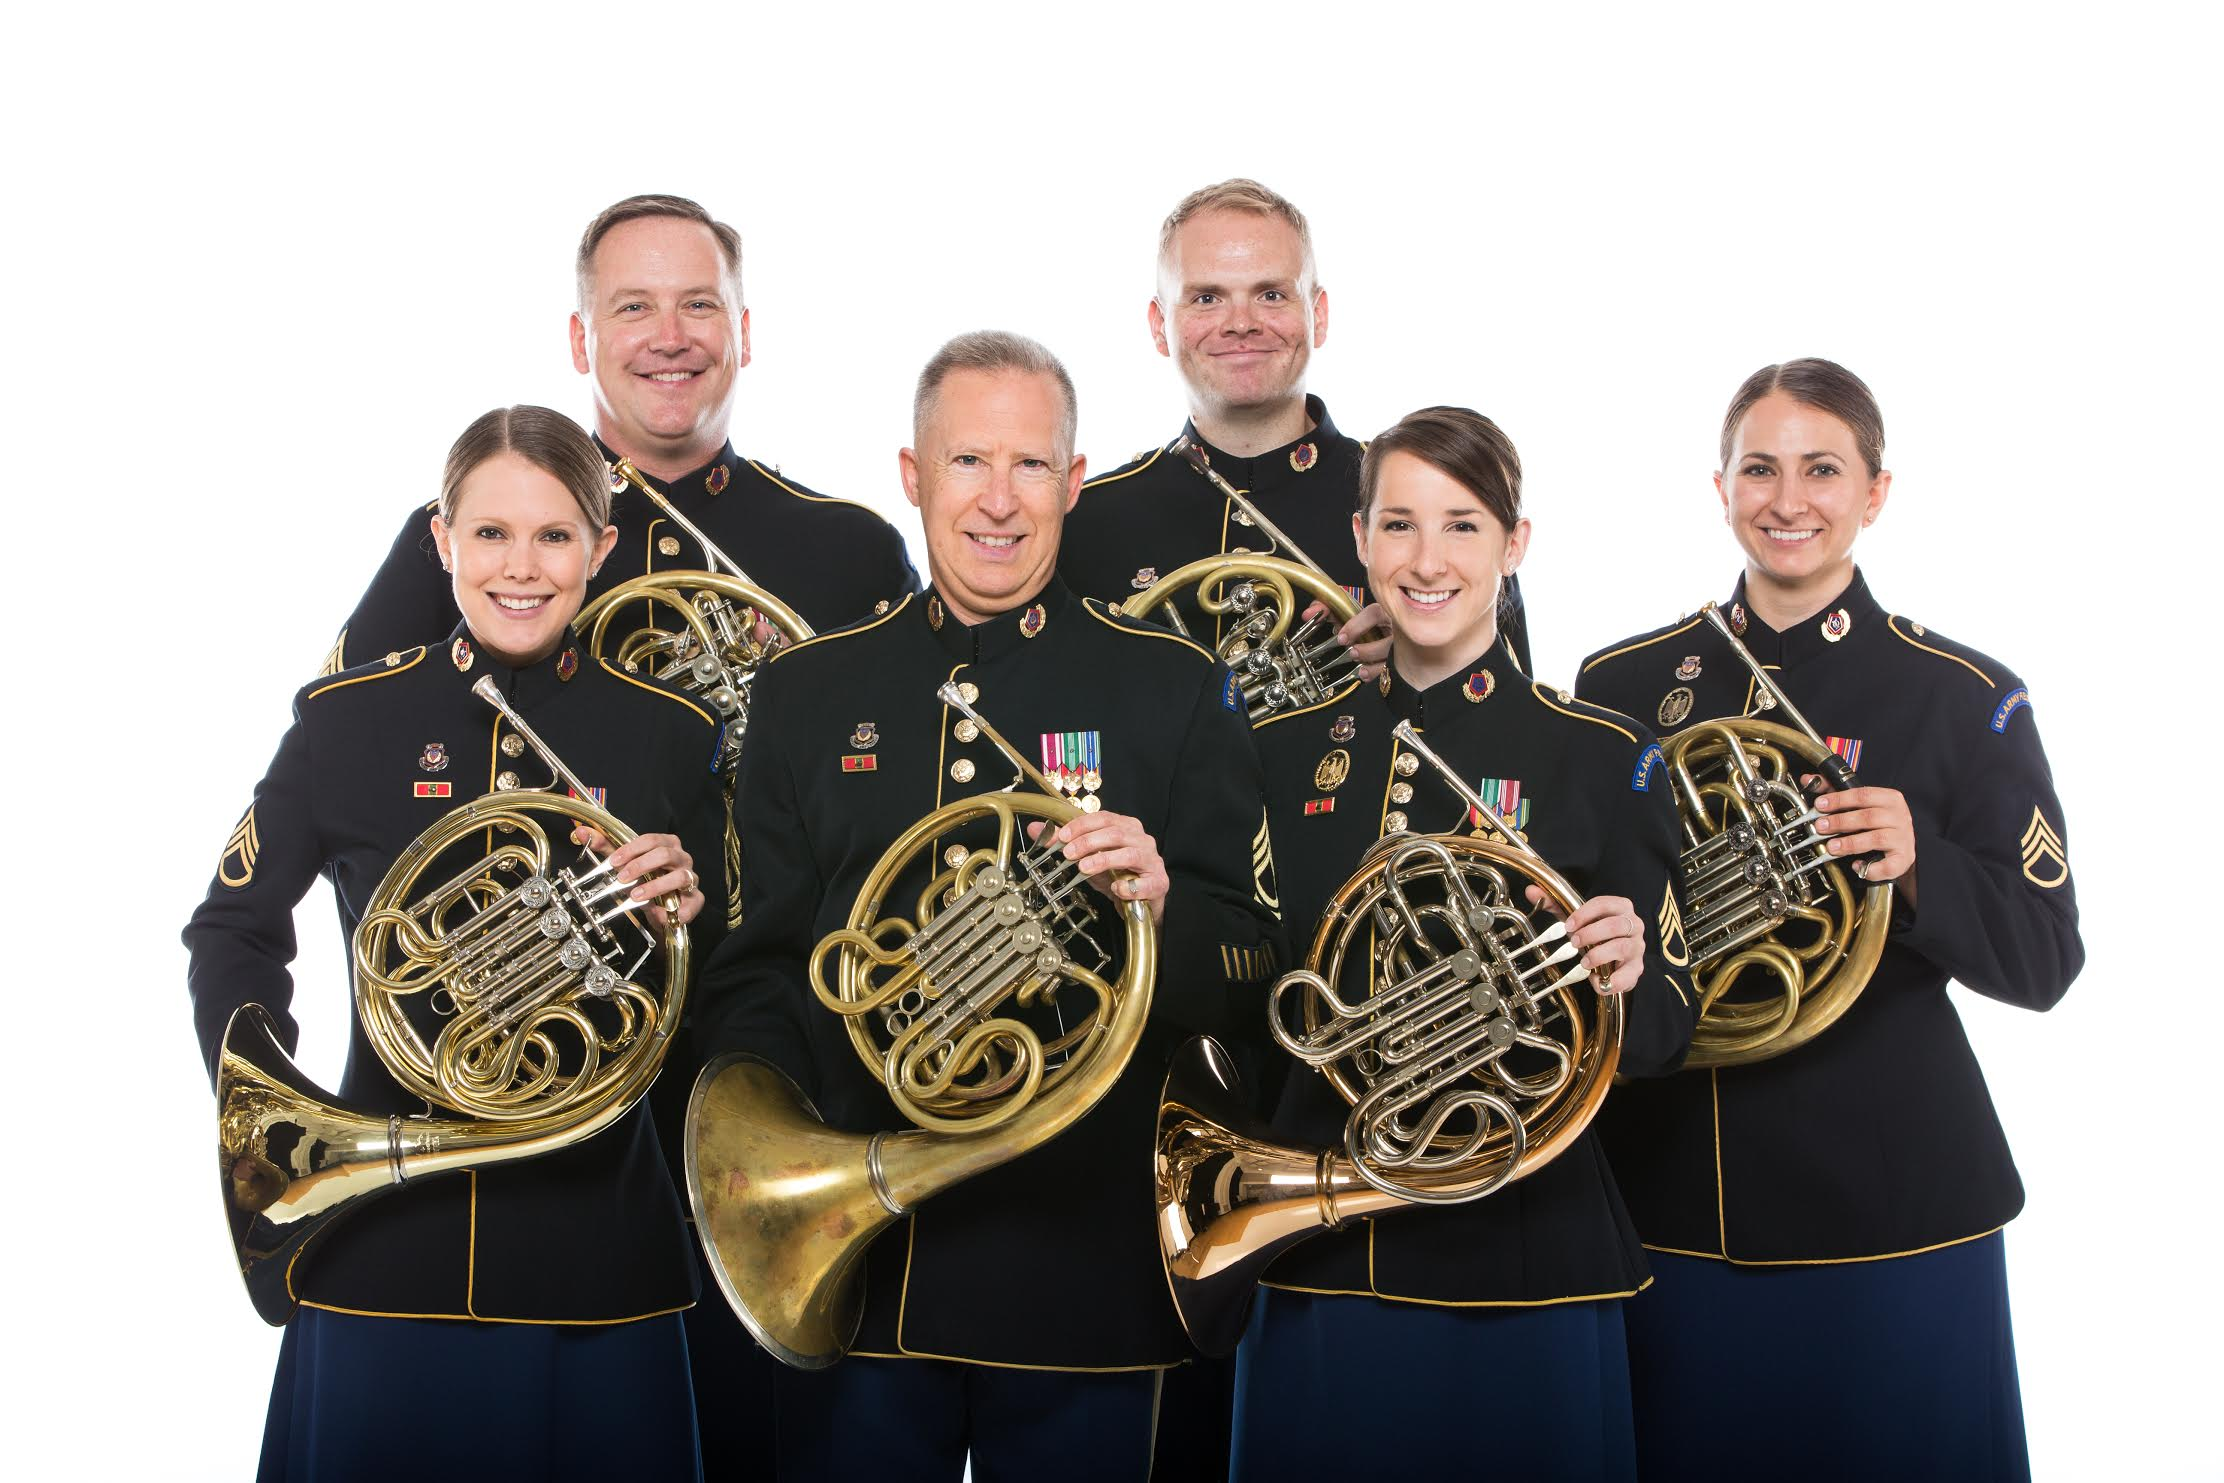 The United States Army Field Band Horn Section